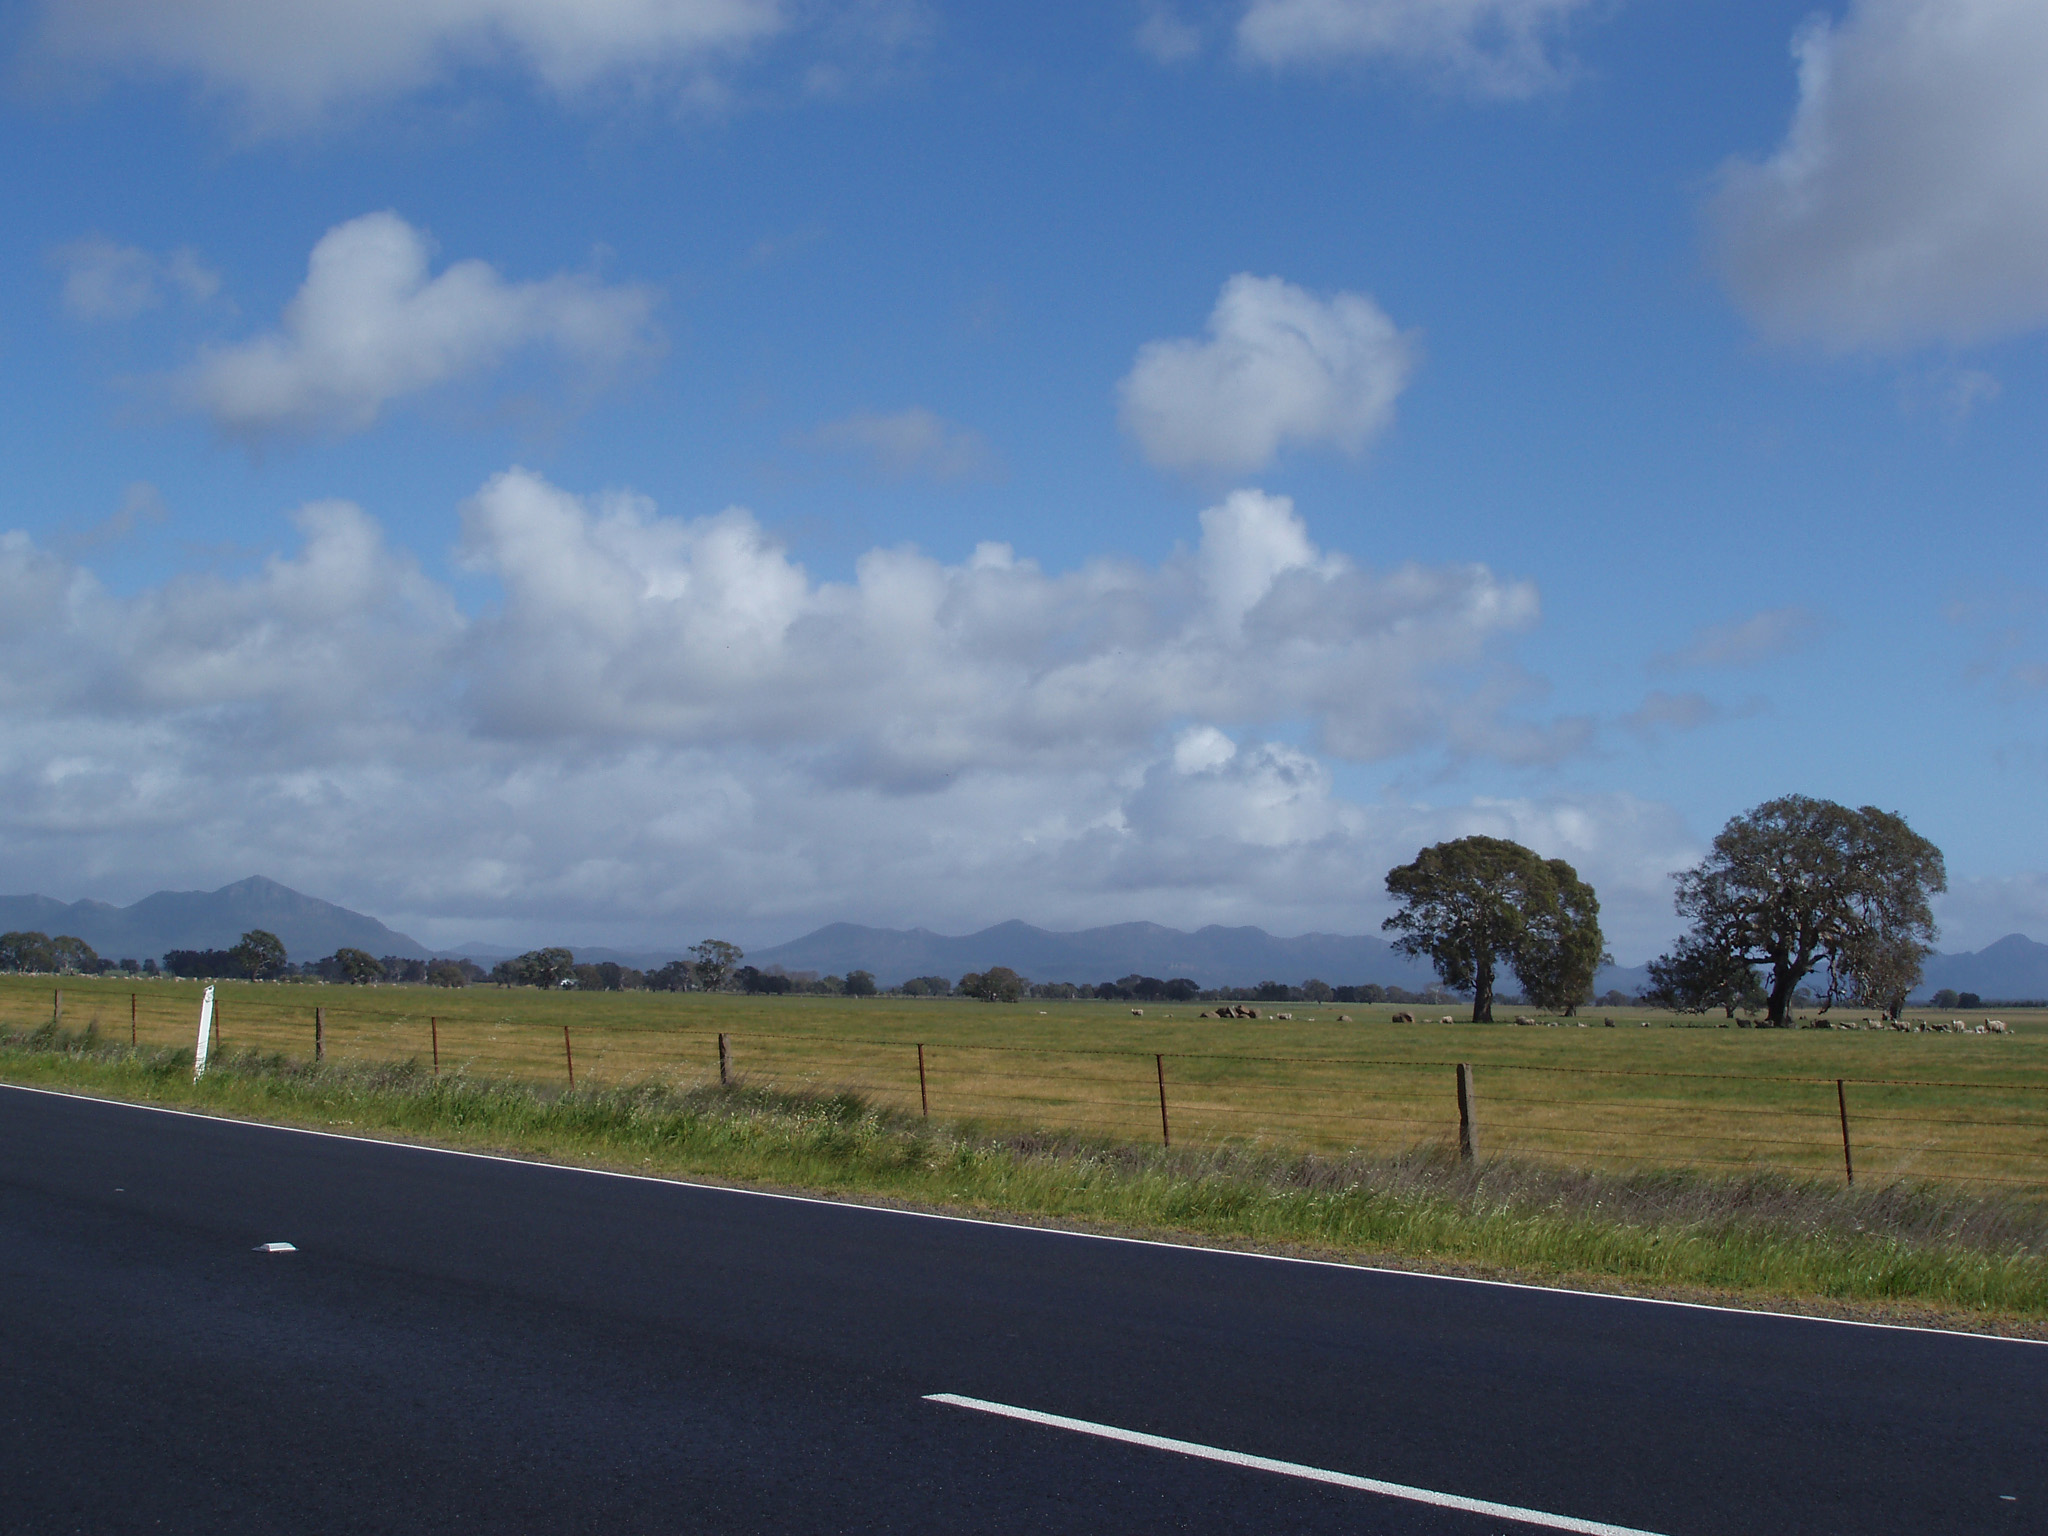 Beautiful Spot at Wide Grassy Grampians Field Along the Road on Lighter Blue and White Sky Background.